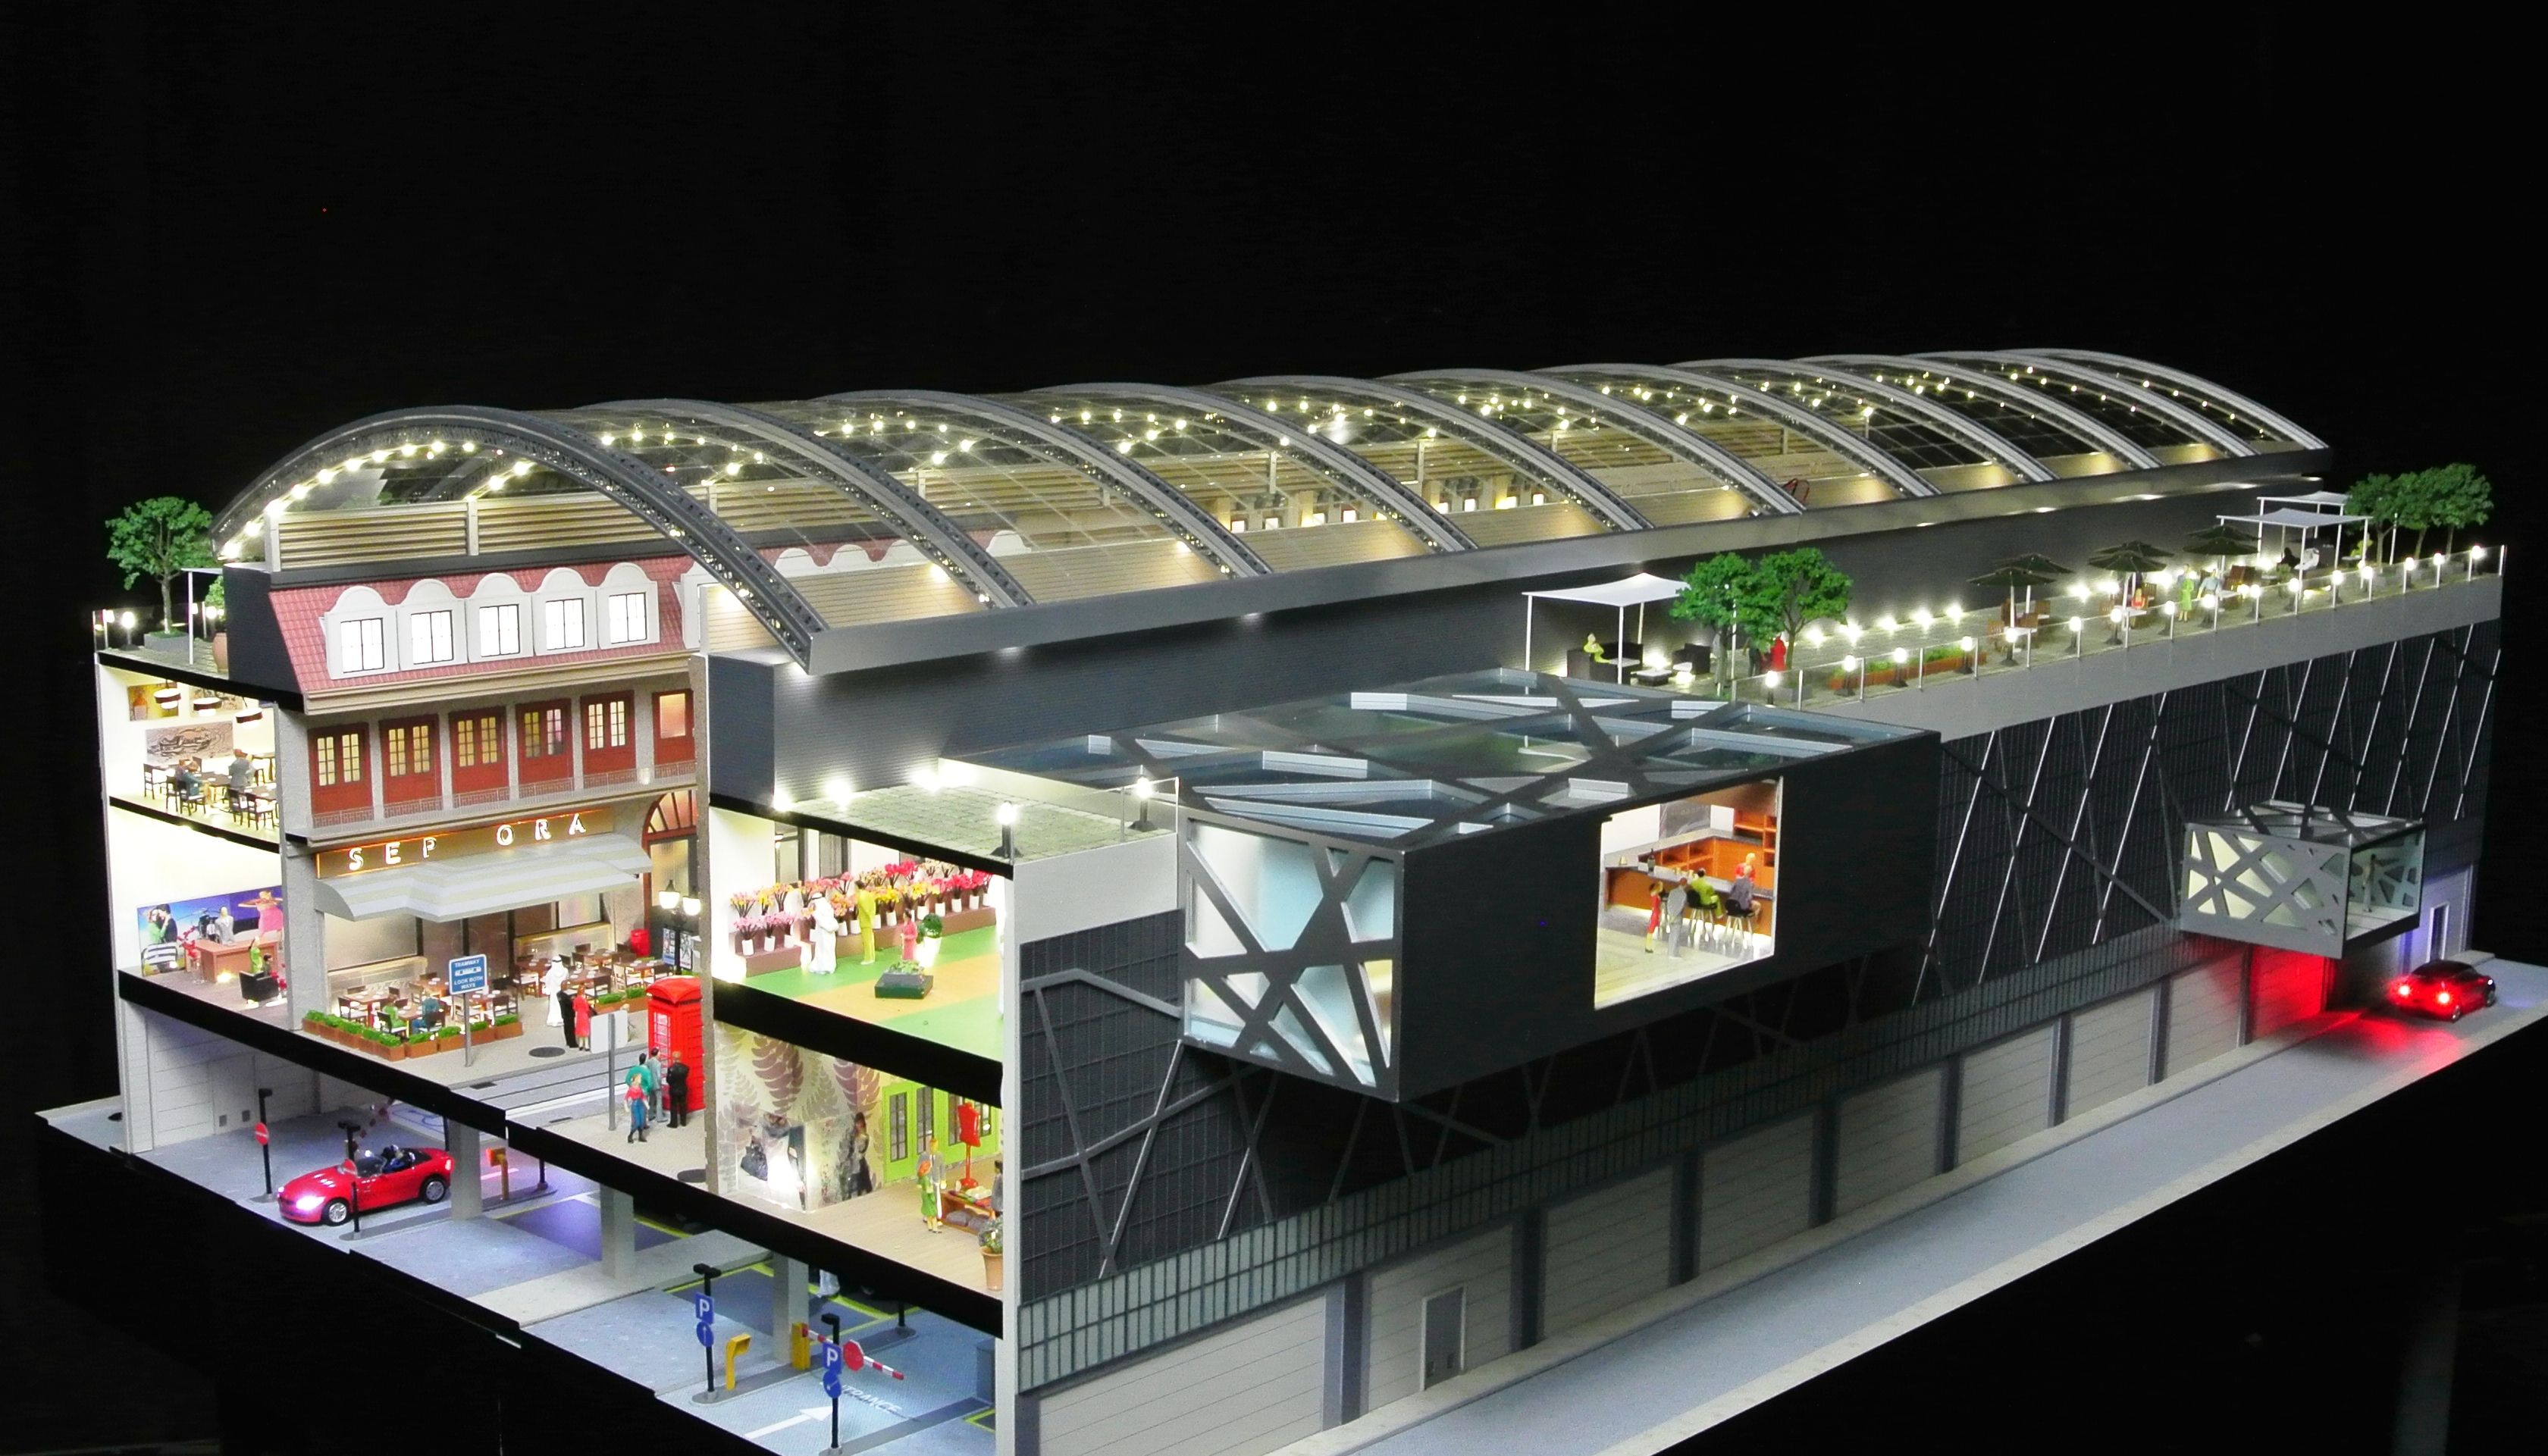 Architectural Zoom Section Cut Model #modelmaking